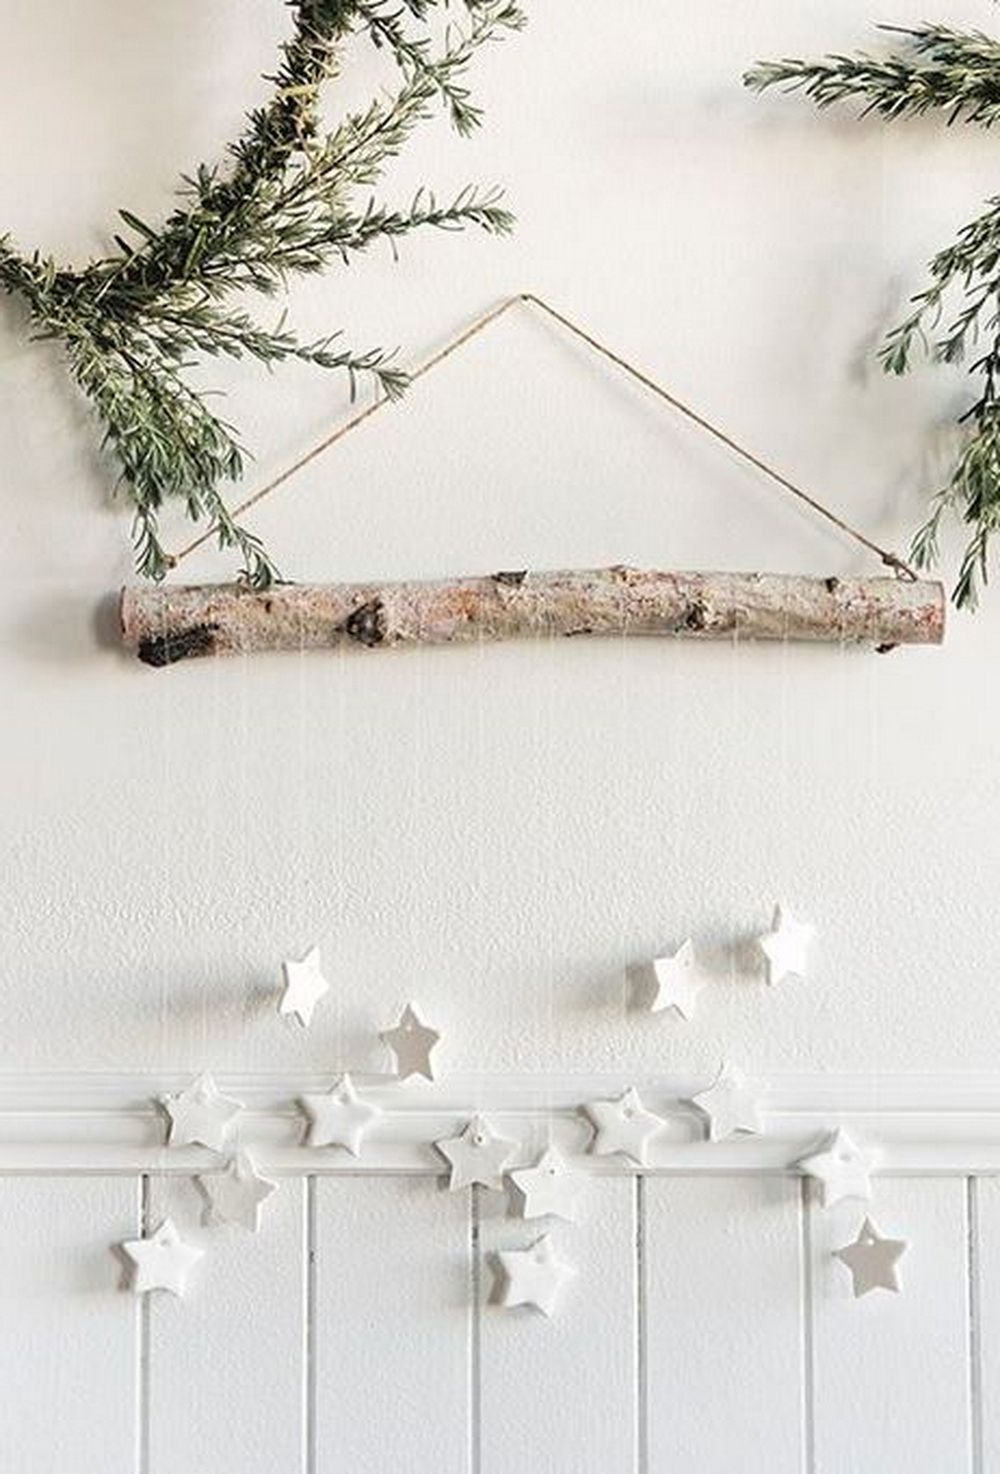 25 Outstanding Scandinavian Holiday Decoration Ideas That Will Inspire You Scandinavian Christmas Decorations Christmas Decor Diy Scandinavian Christmas